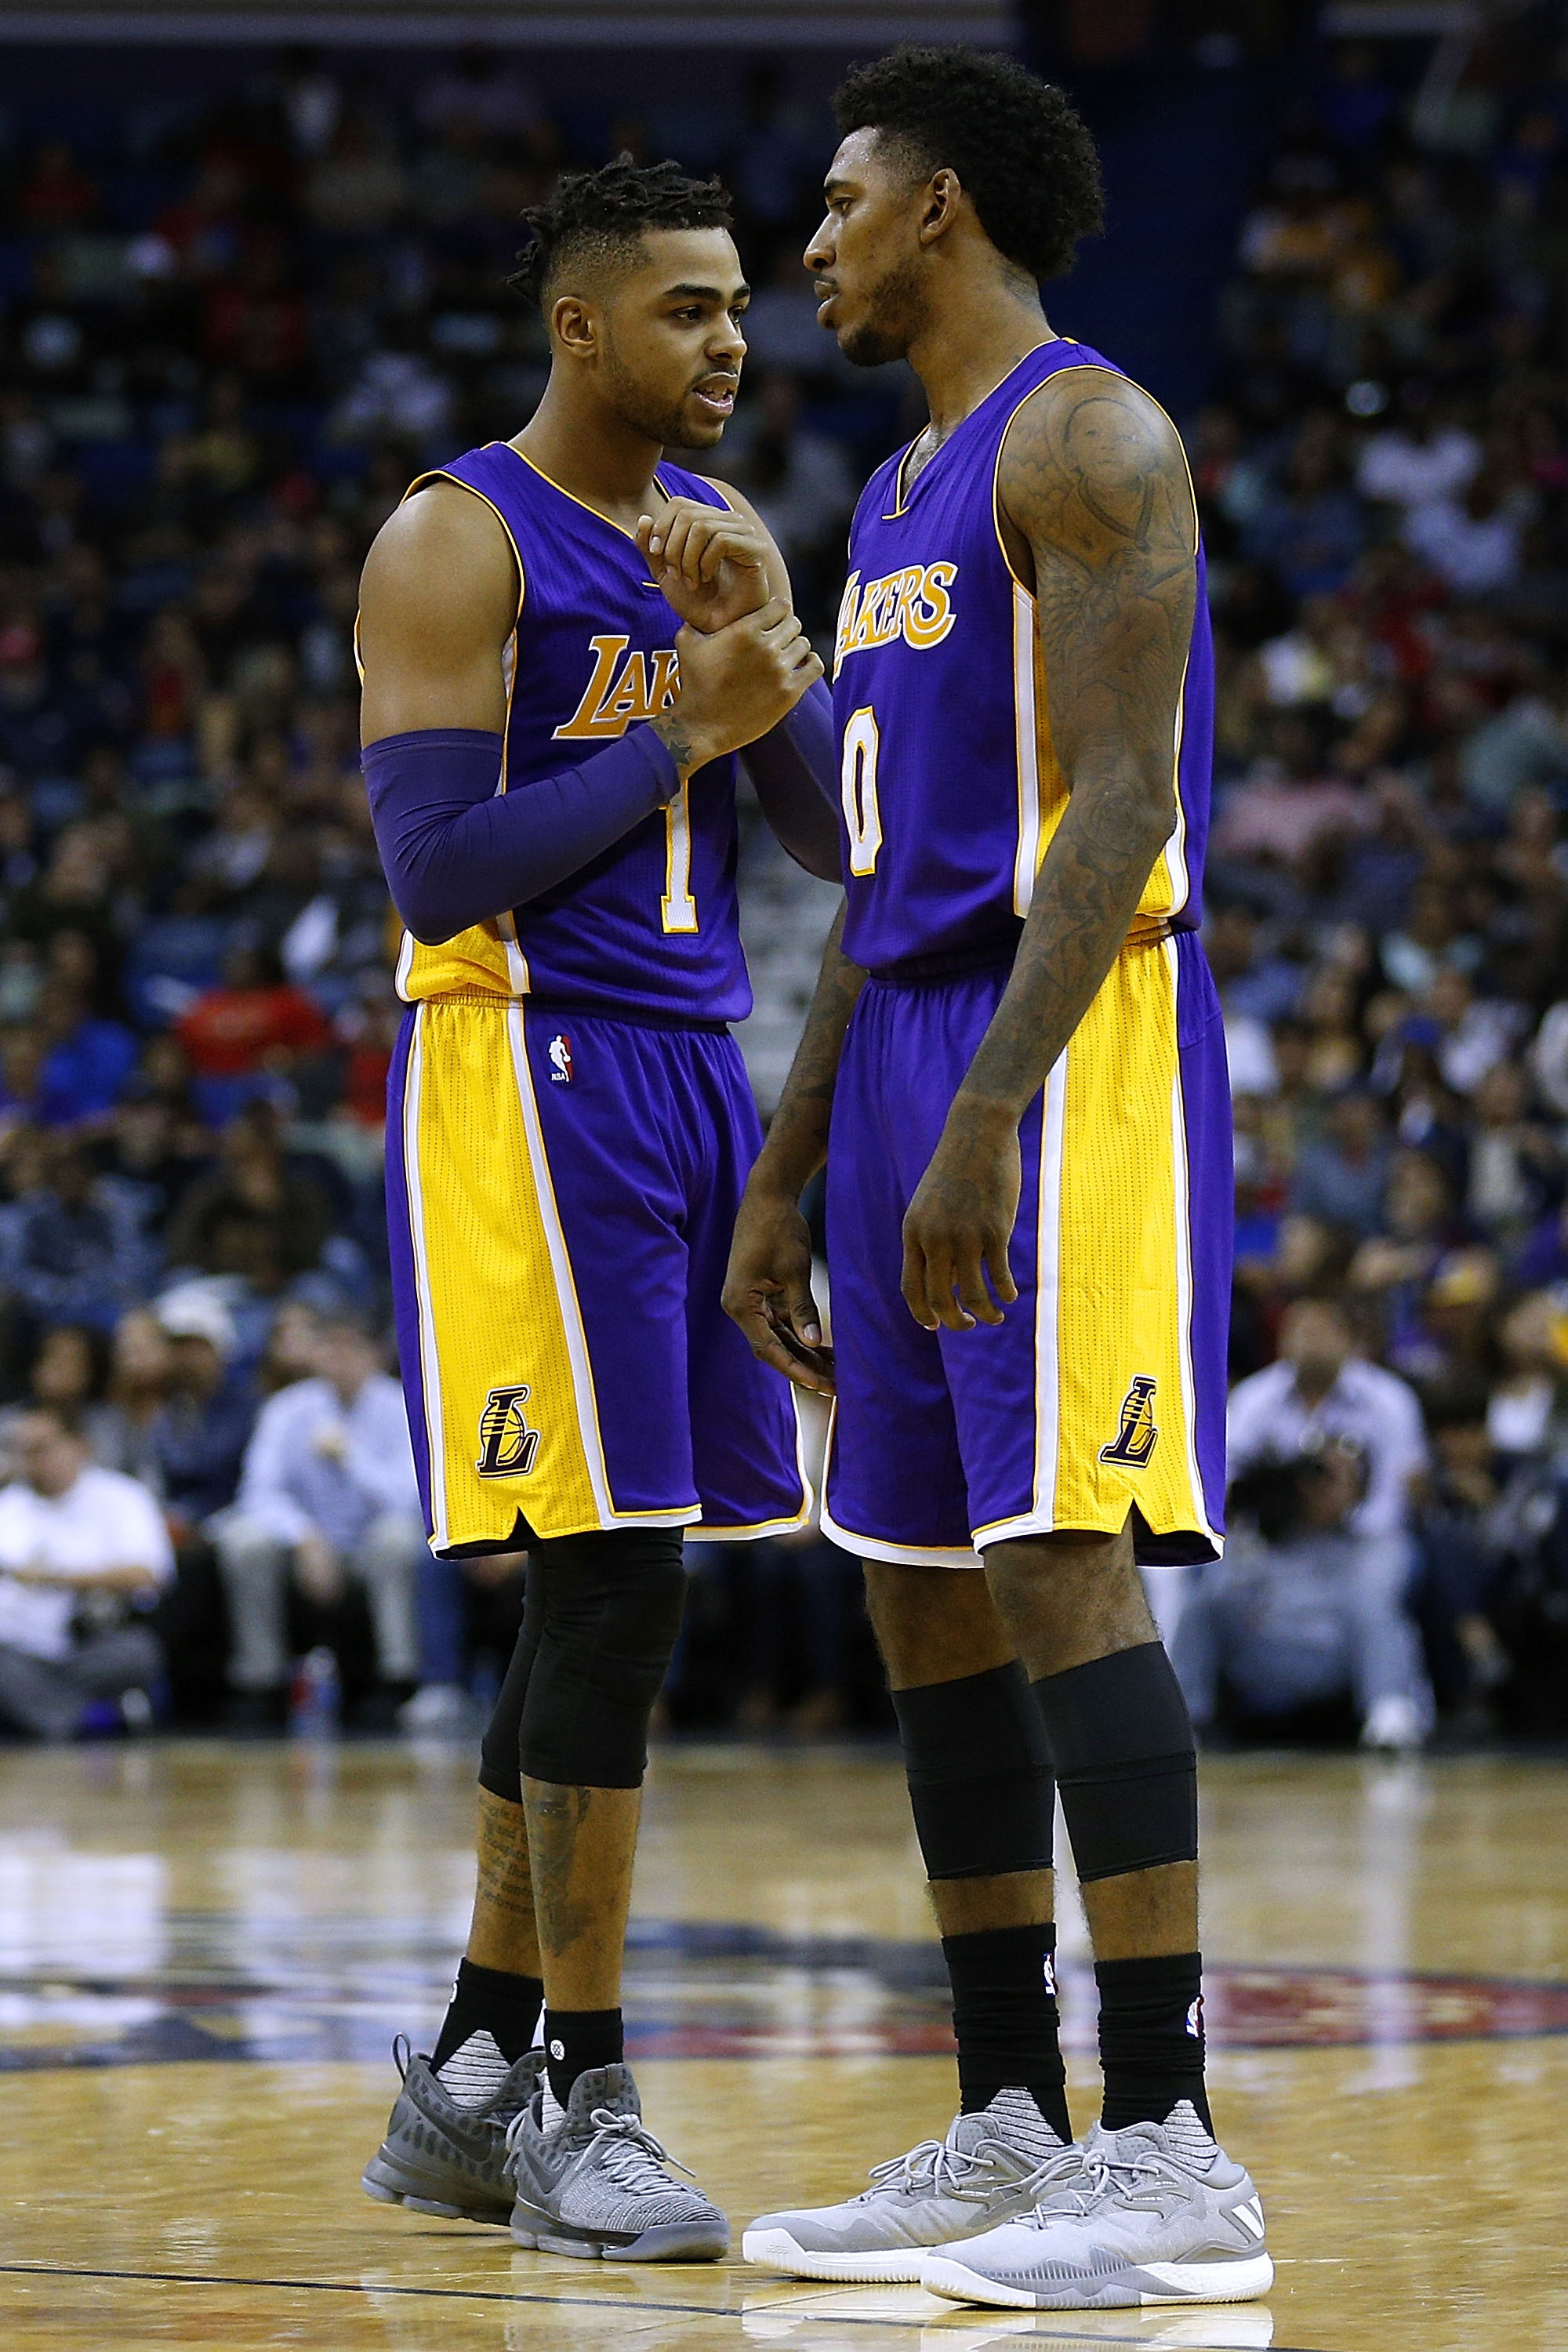 D'Angelo Russell #1 of the Los Angeles Lakers and Nick Young #0 talk during a game against the New Orleans Pelicans at the Smoothie King Center on November 12, 2016 in New Orleans, Louisiana.